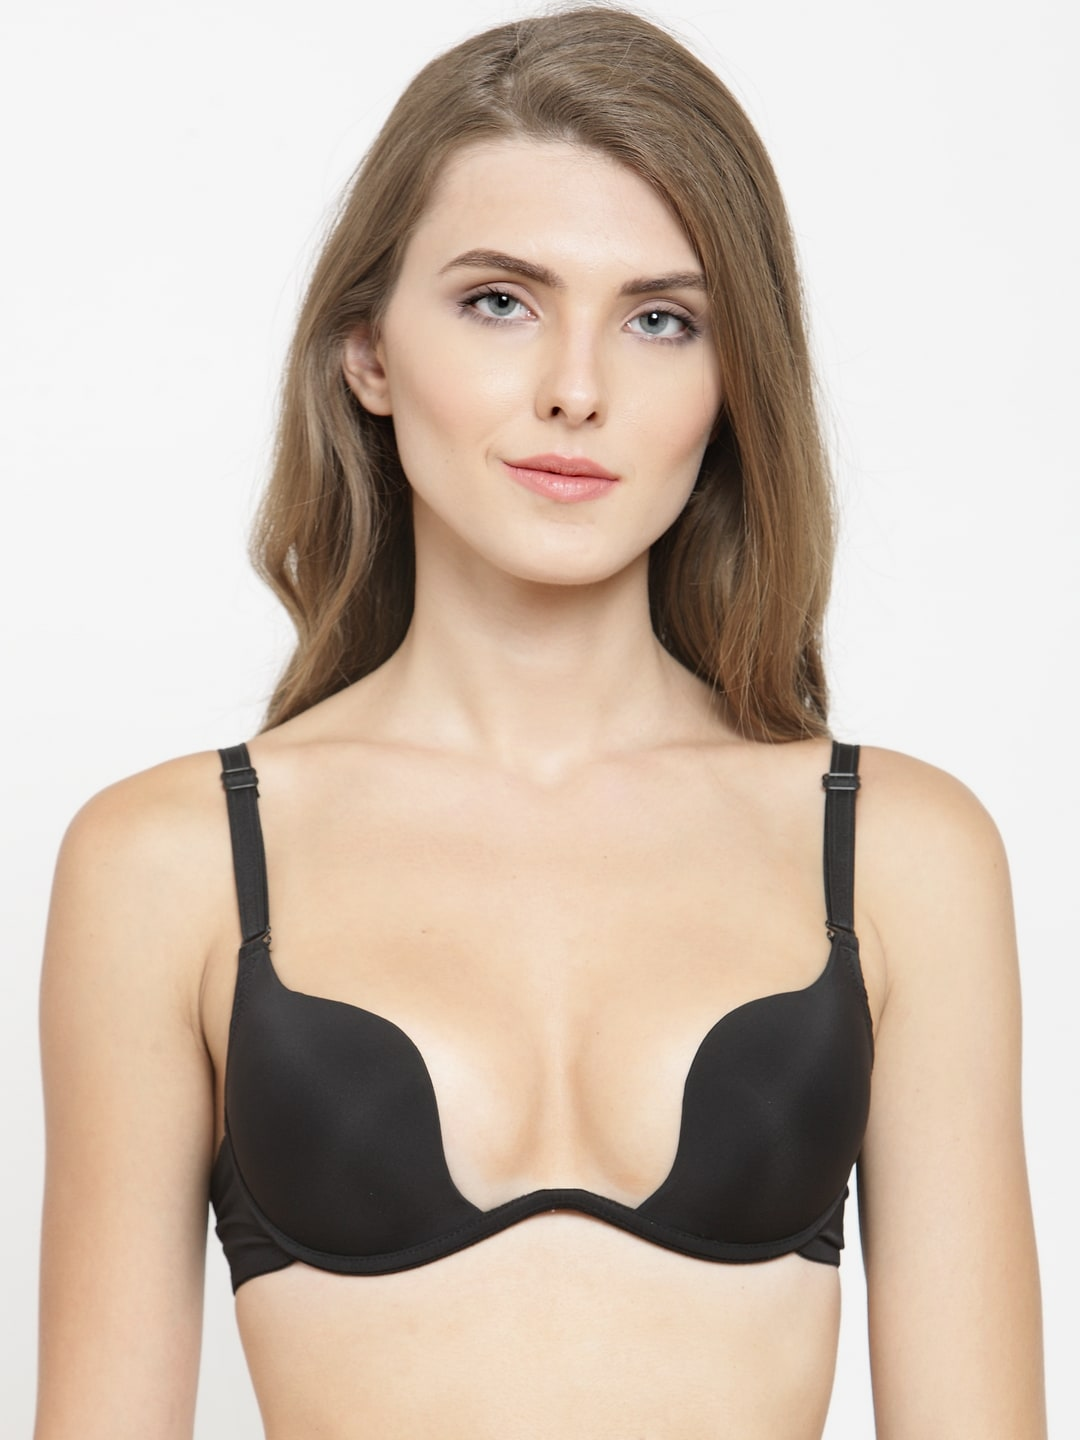 ffbce2f33db7c Cotton Bra - Buy Cotton Bras for Women   Girls Online